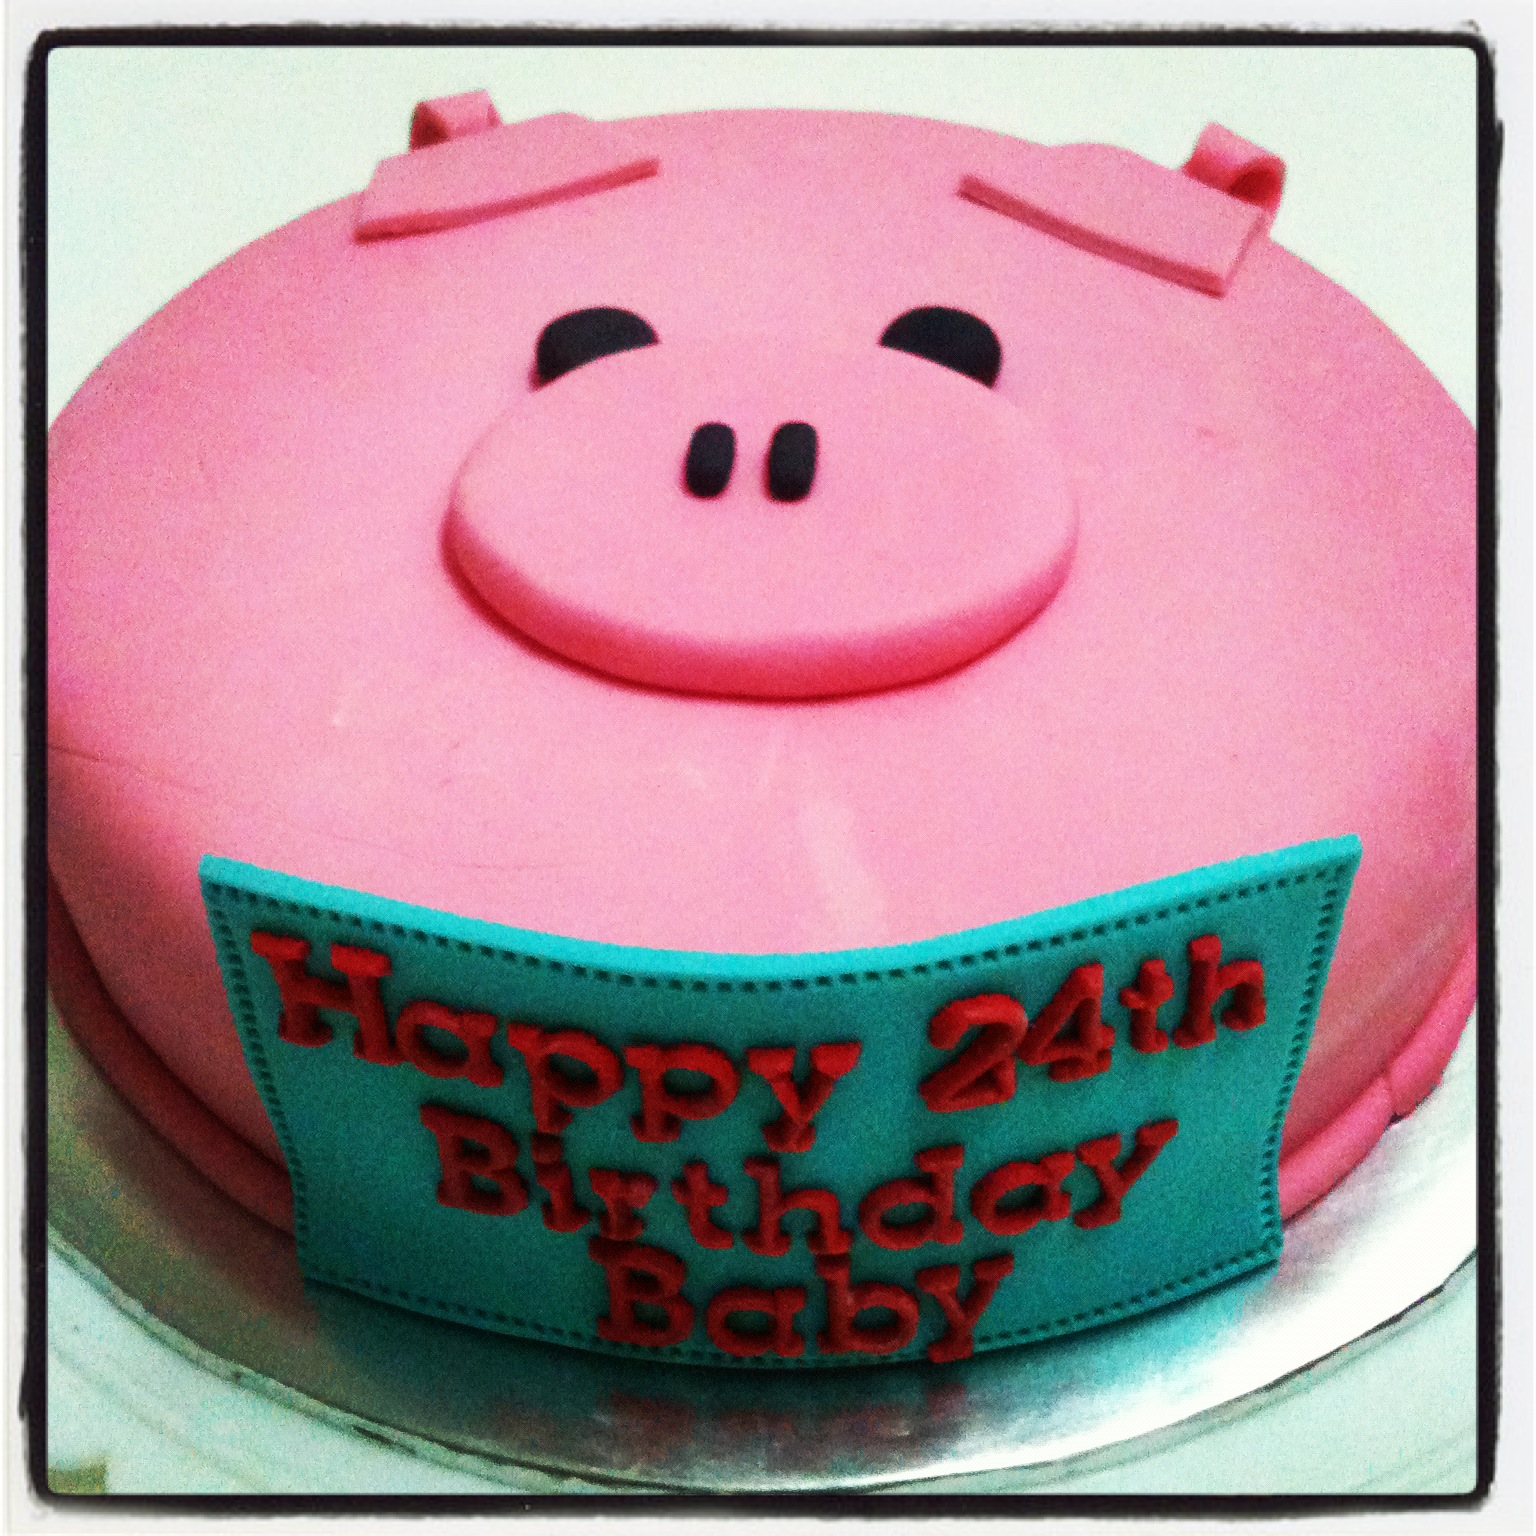 A Simple PIGGY Cake From Lovely And Thoughtful Girlfriend To Her Boyfriend For His 24th Birthday Im Glad He Likes It